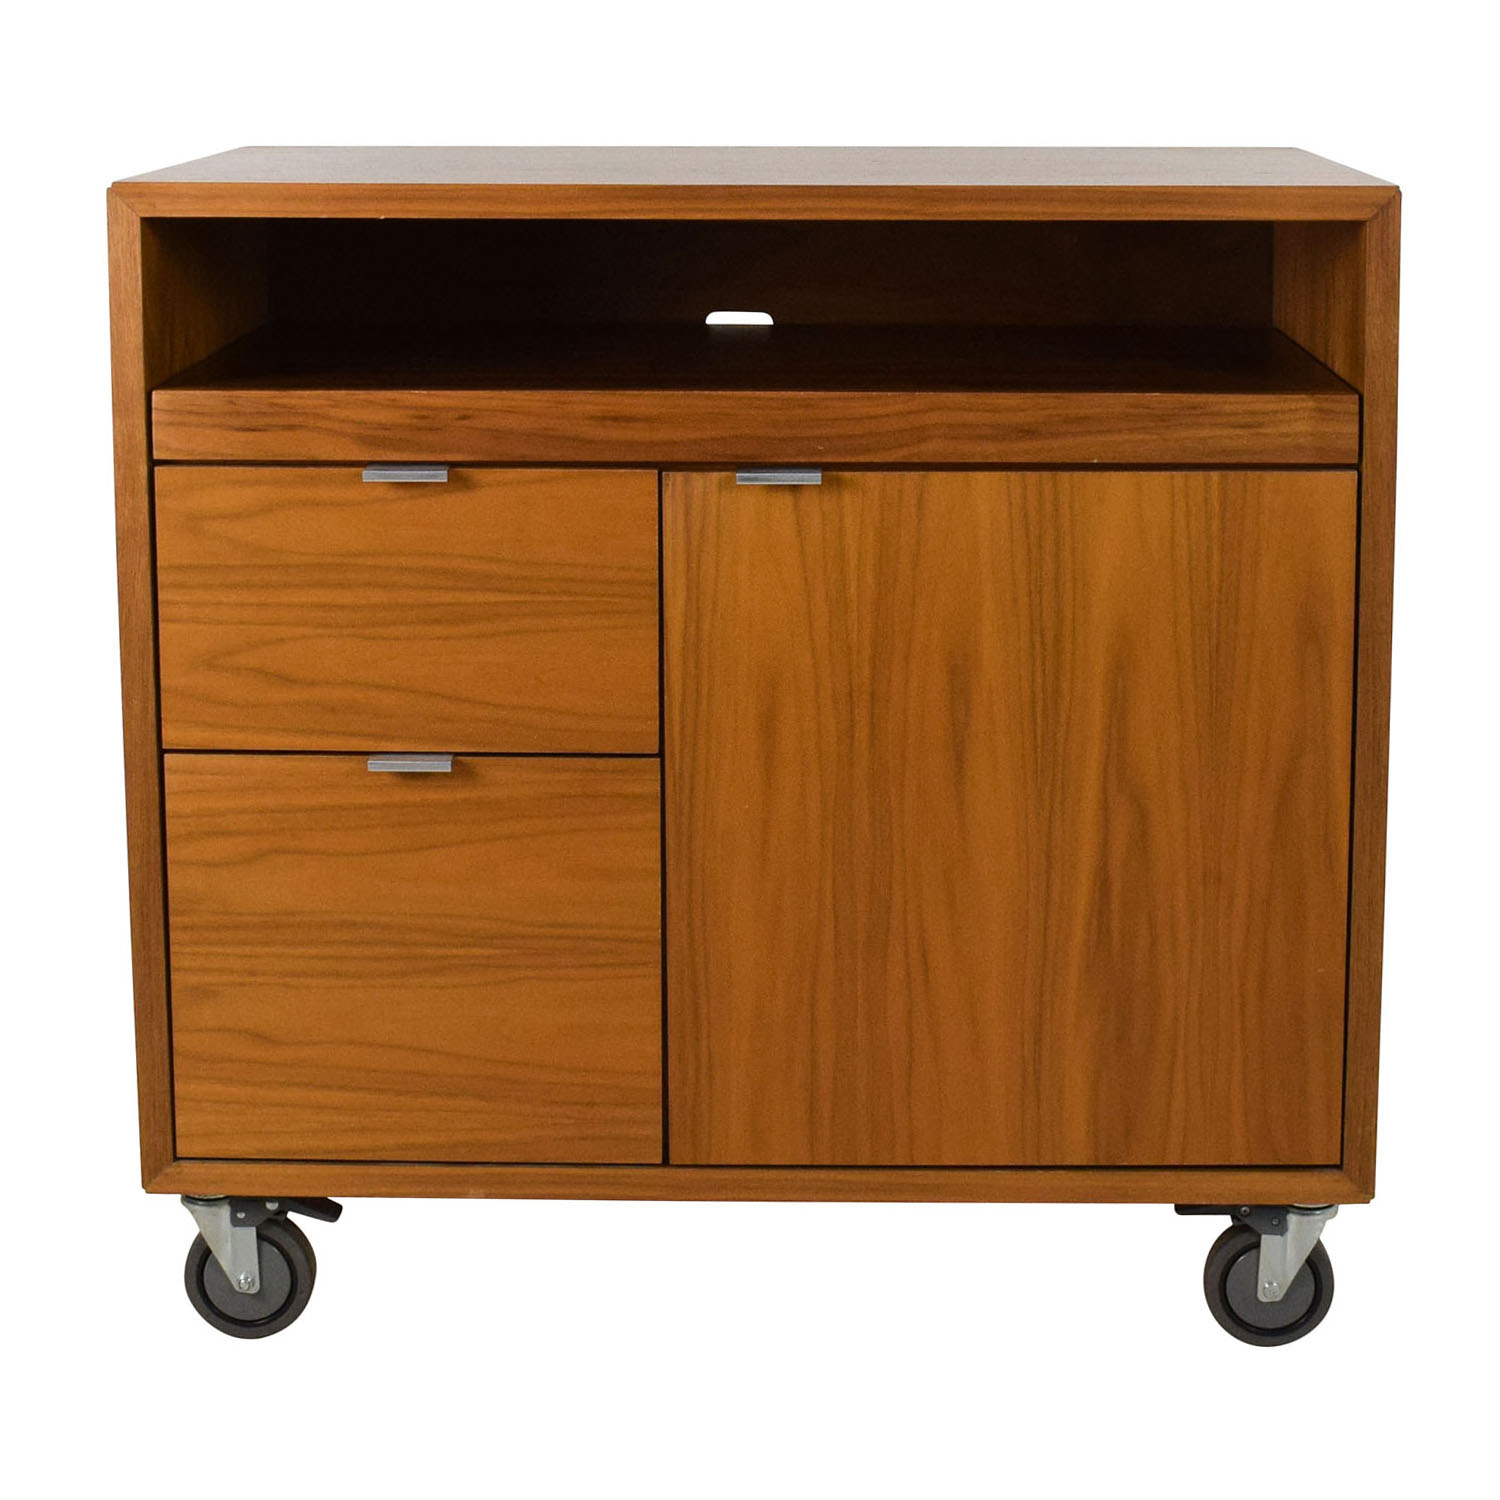 Room and Board Room & Board Copenhagen Office Cabinet discount